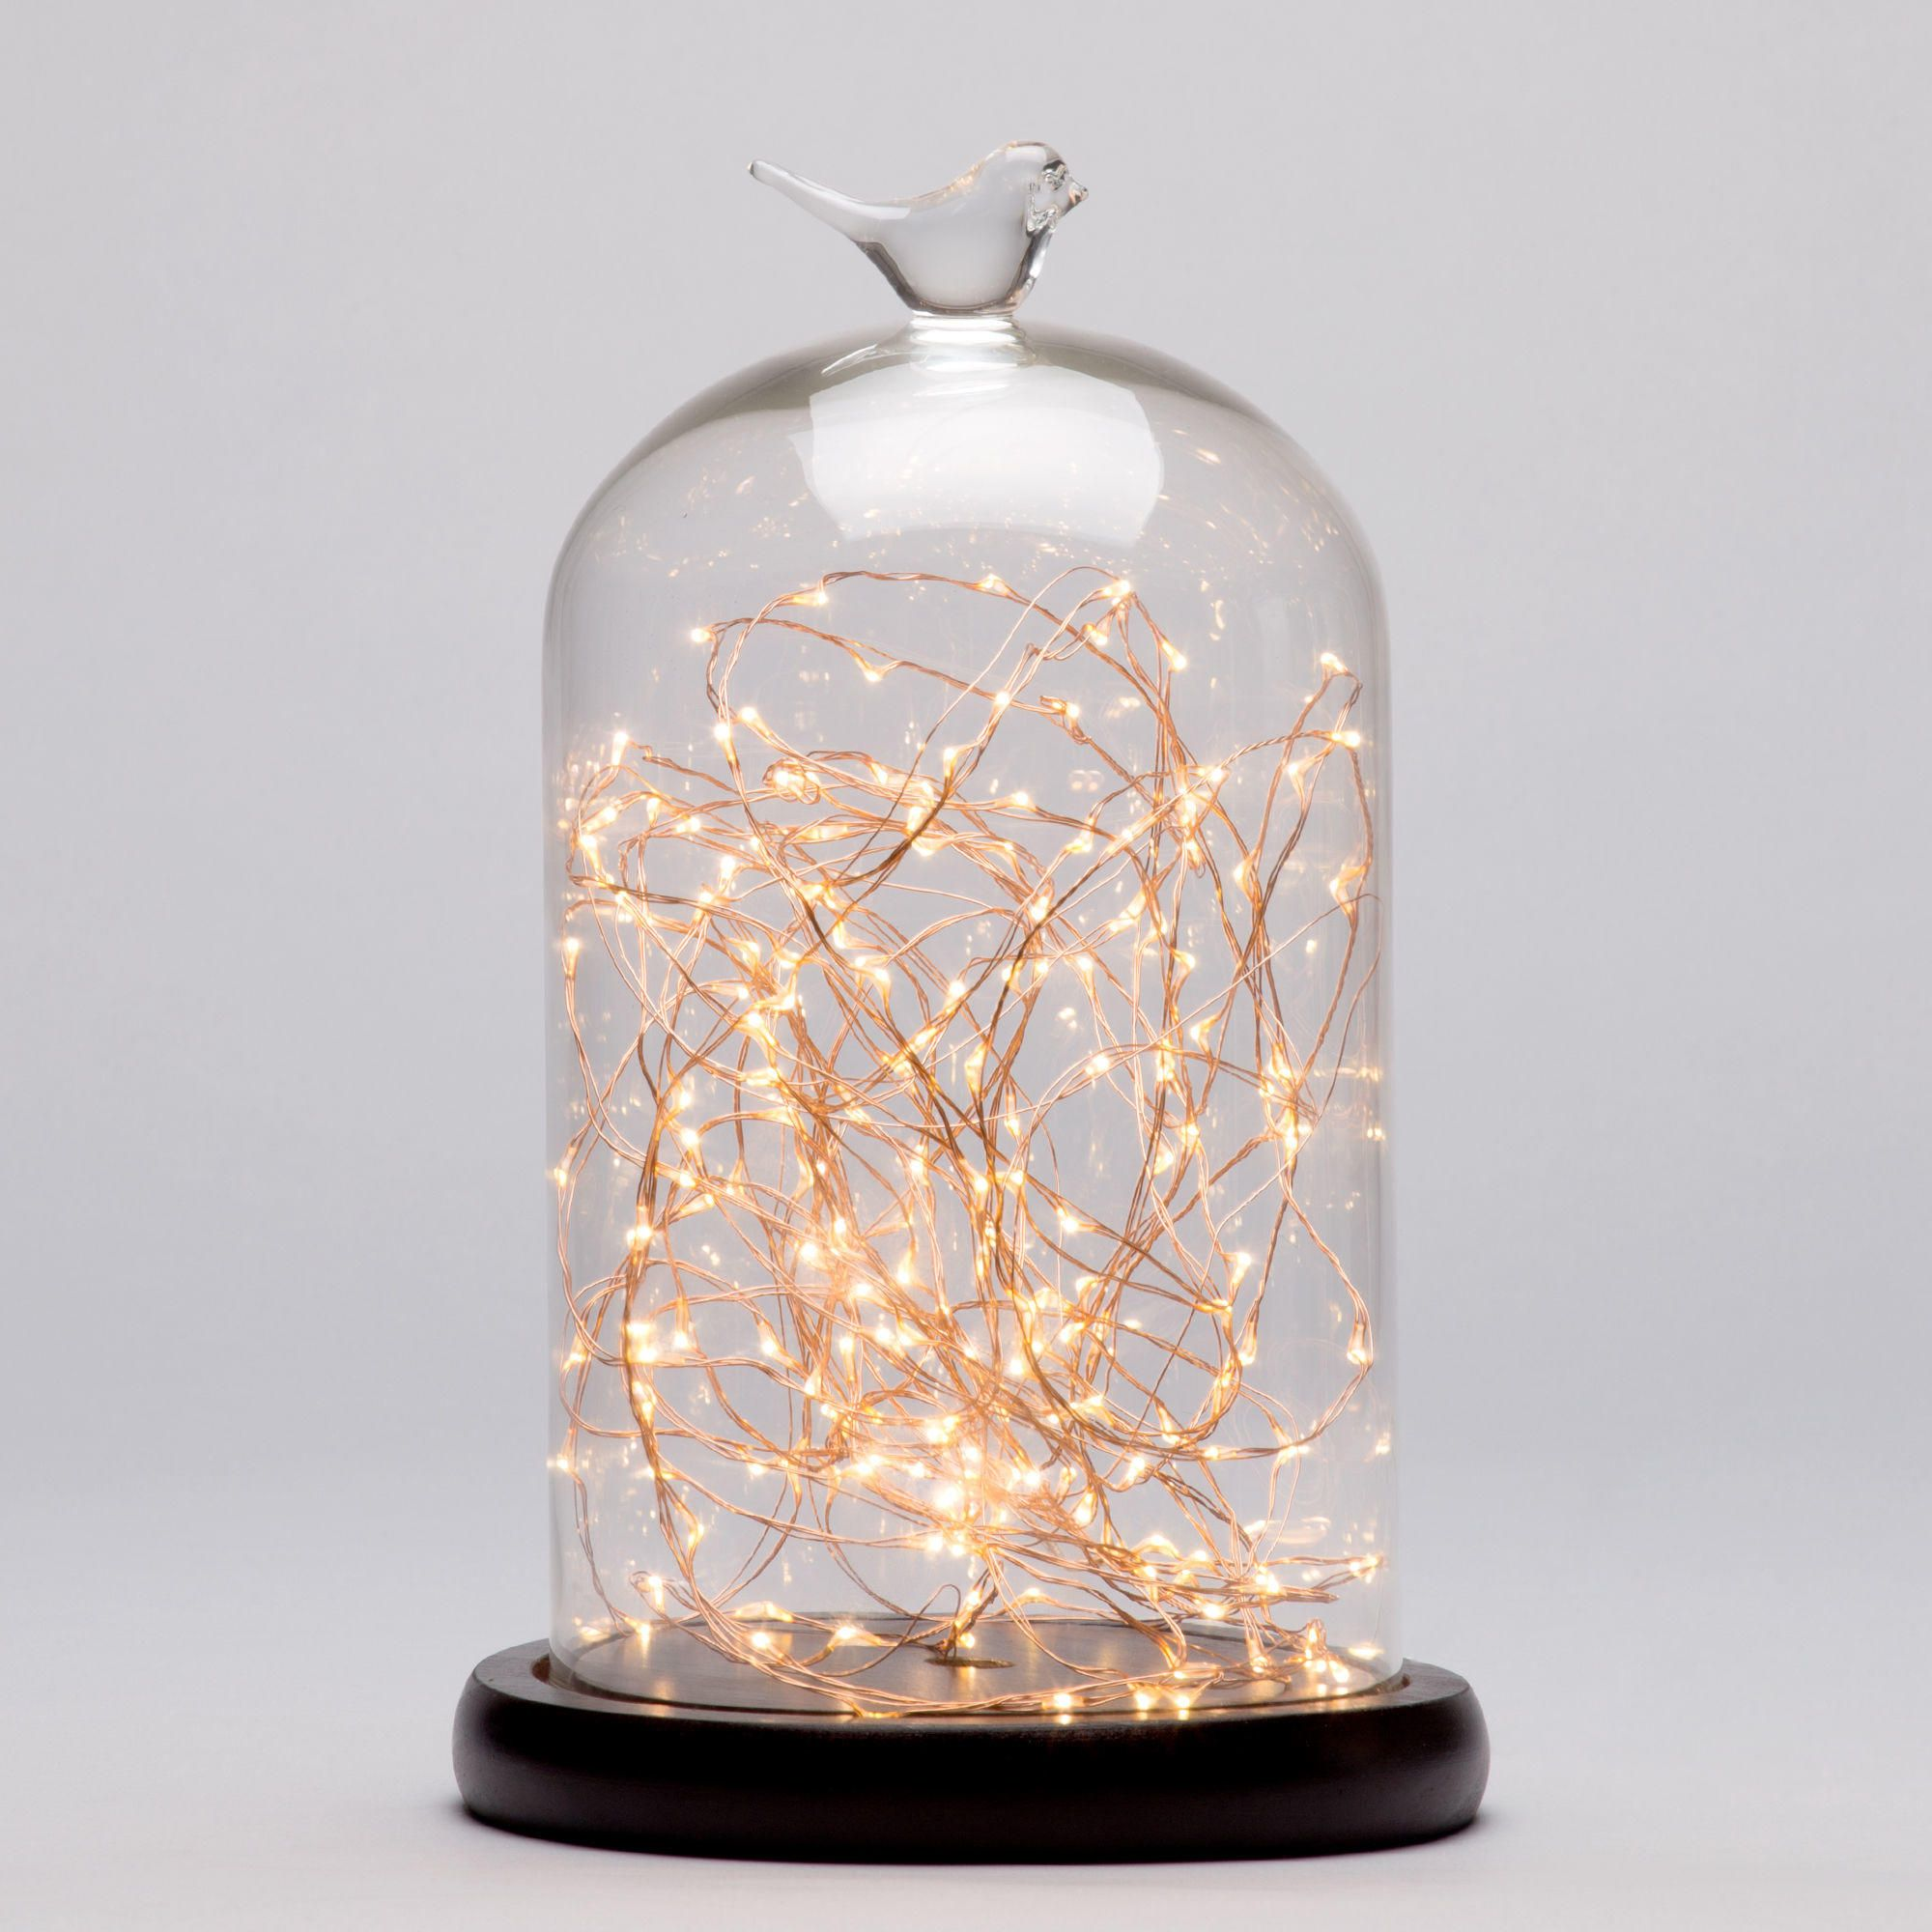 bell-jar-copper-dark-wood-table-lamp